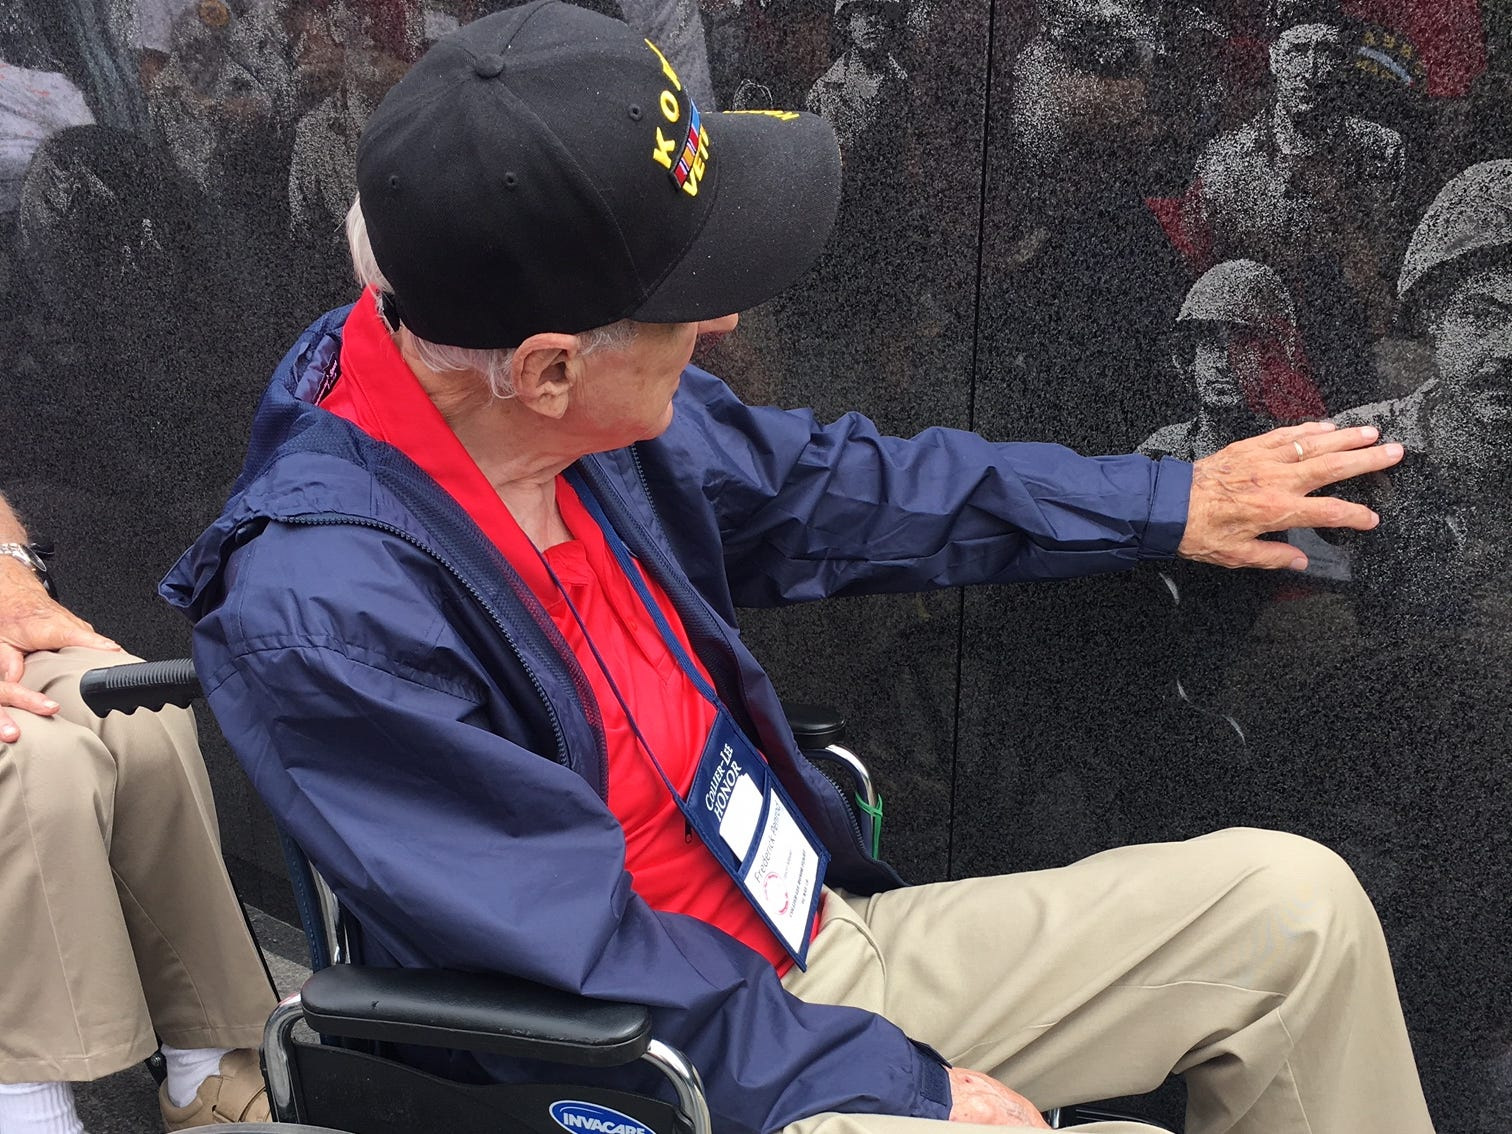 Korean War veteran Frederick Penrod touches images on the granite wall Saturday, May 4, 2019, while on a trip with the Collier-Lee Honor Flight.